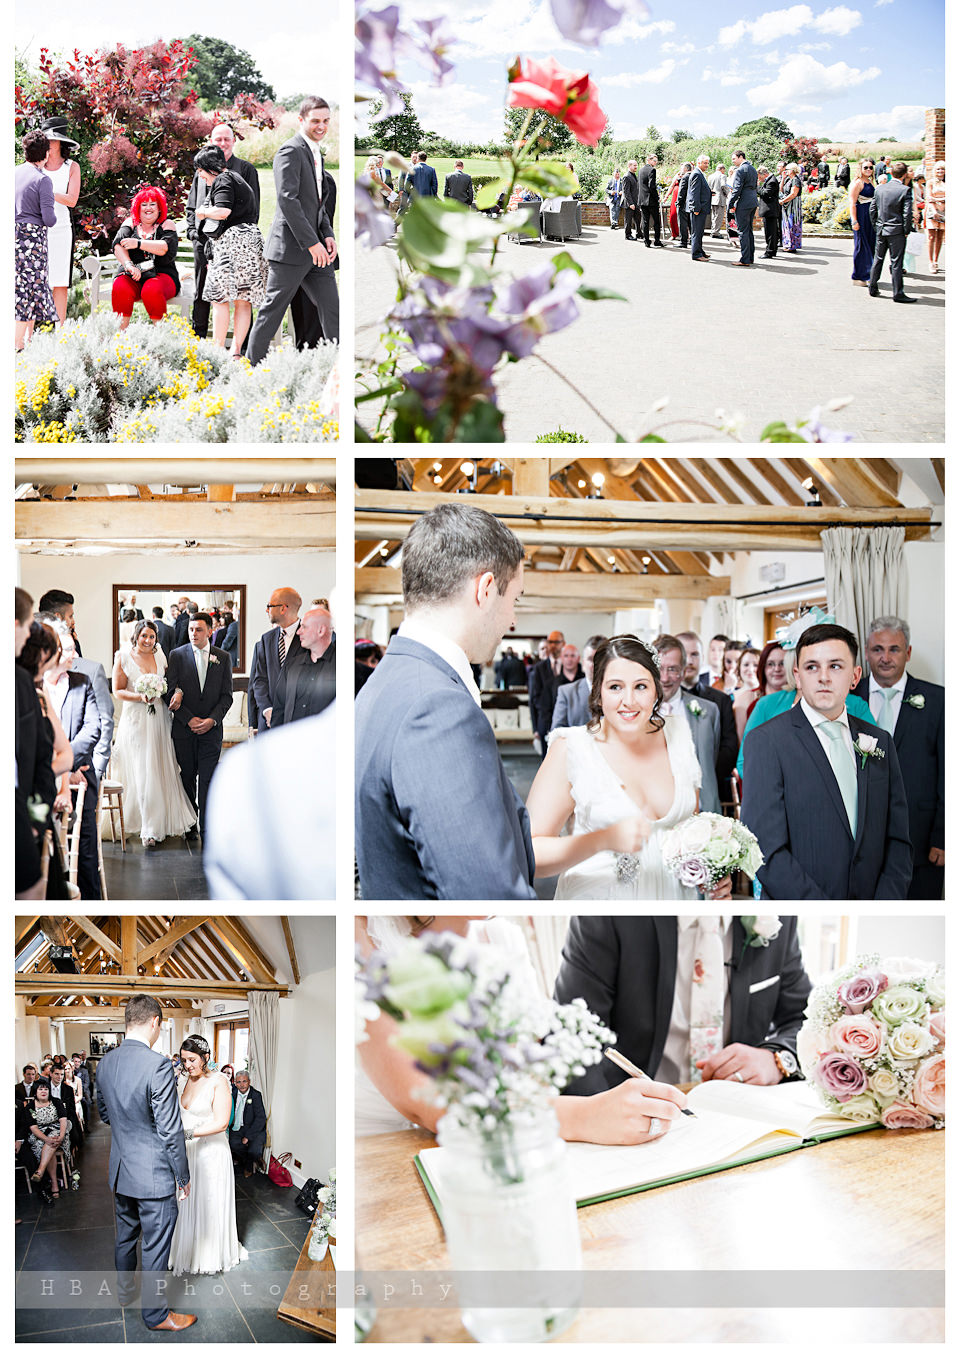 Donna & Steve's wedding at Wethele Manor, Warwickshire, by relaxed and contemporary wedding photographers HBA Photography based in Derbyshire, Staffordshire and the Midlands